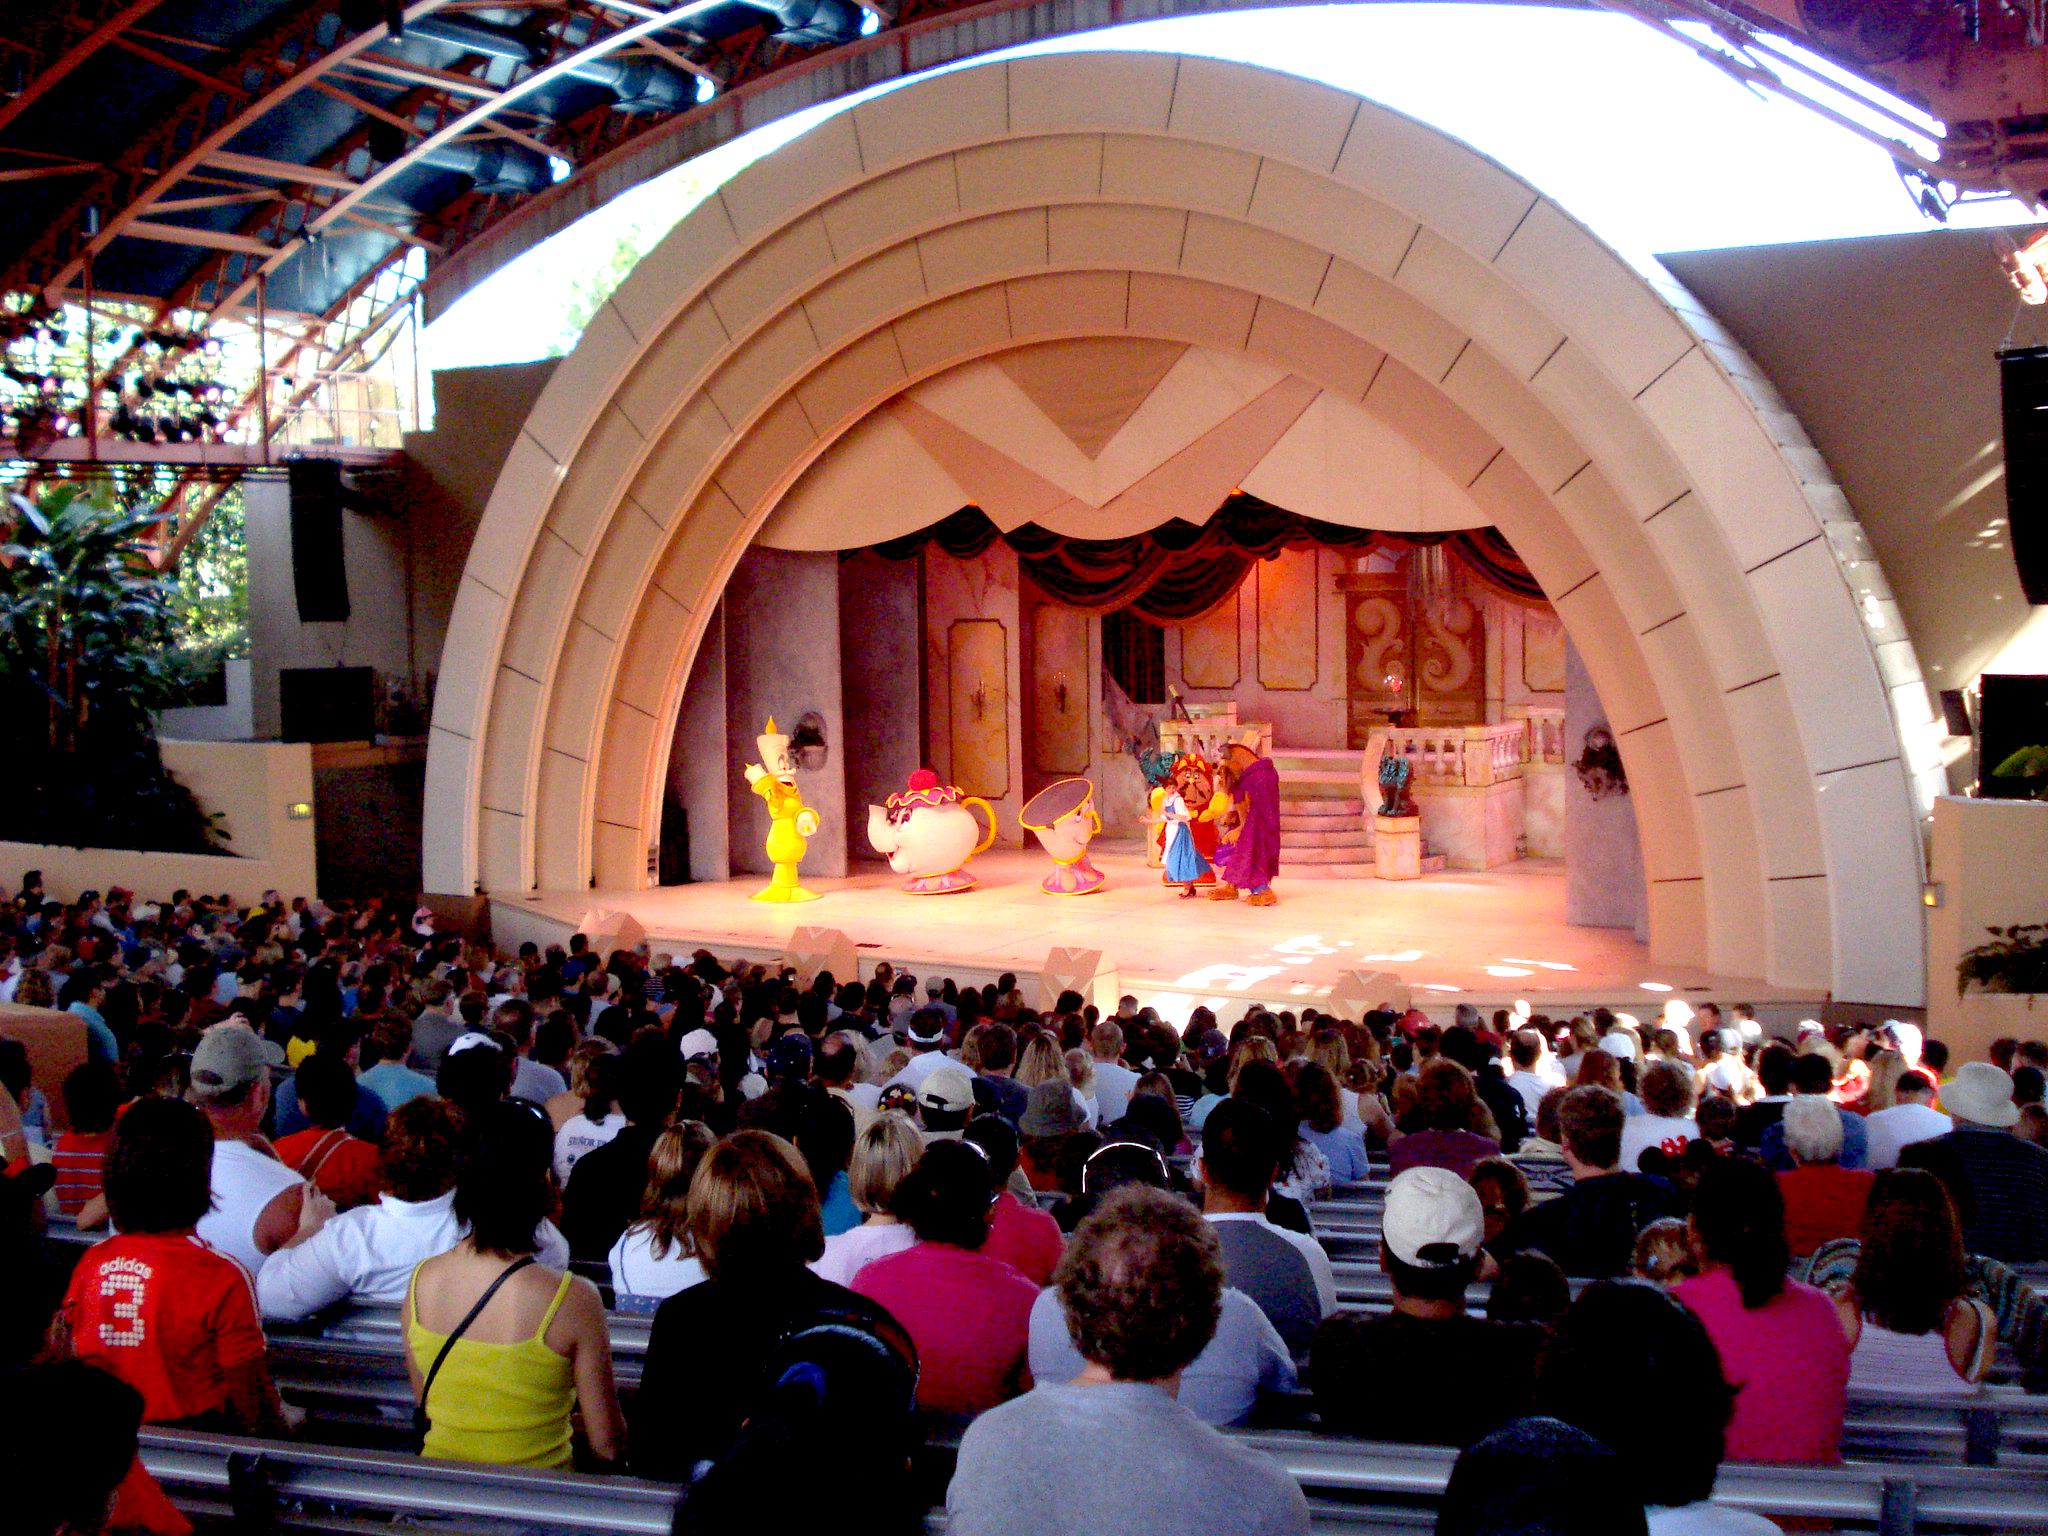 Beauty and the Beast theater in Hollywood Studios at Disney World 1